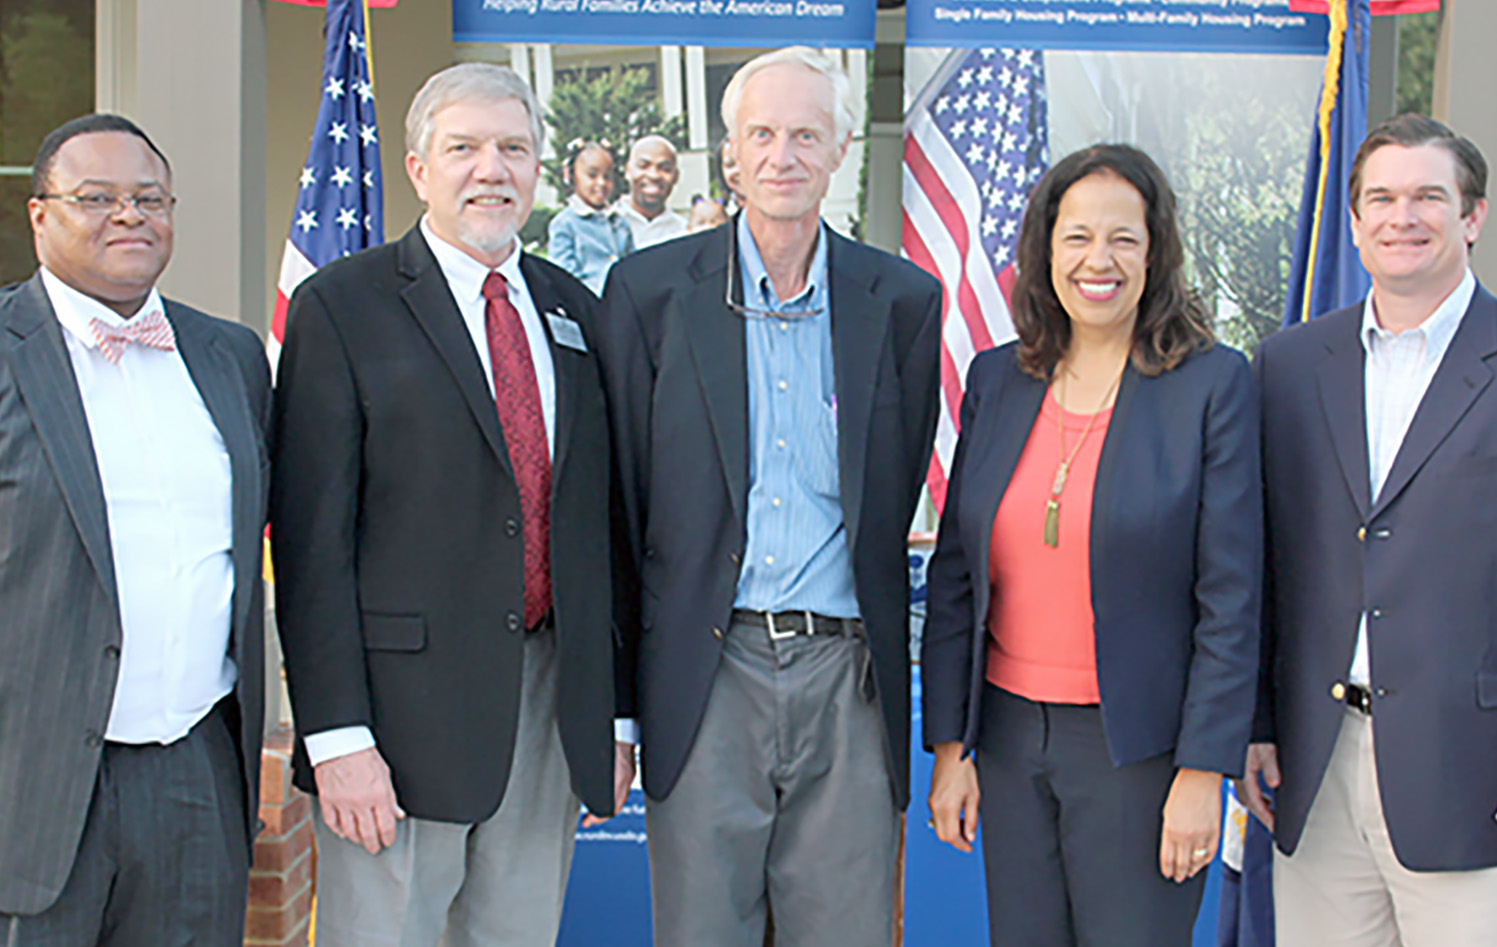 Pictured, from left, are Quentin Robinson, Georgia Director for USDA Rural Development; Joe West, assistant dean of UGA Tifton Campus; Craig Kvien; Lisa Mensah, USDA Rural Development Undersecretary; and Representative Austin Scott.